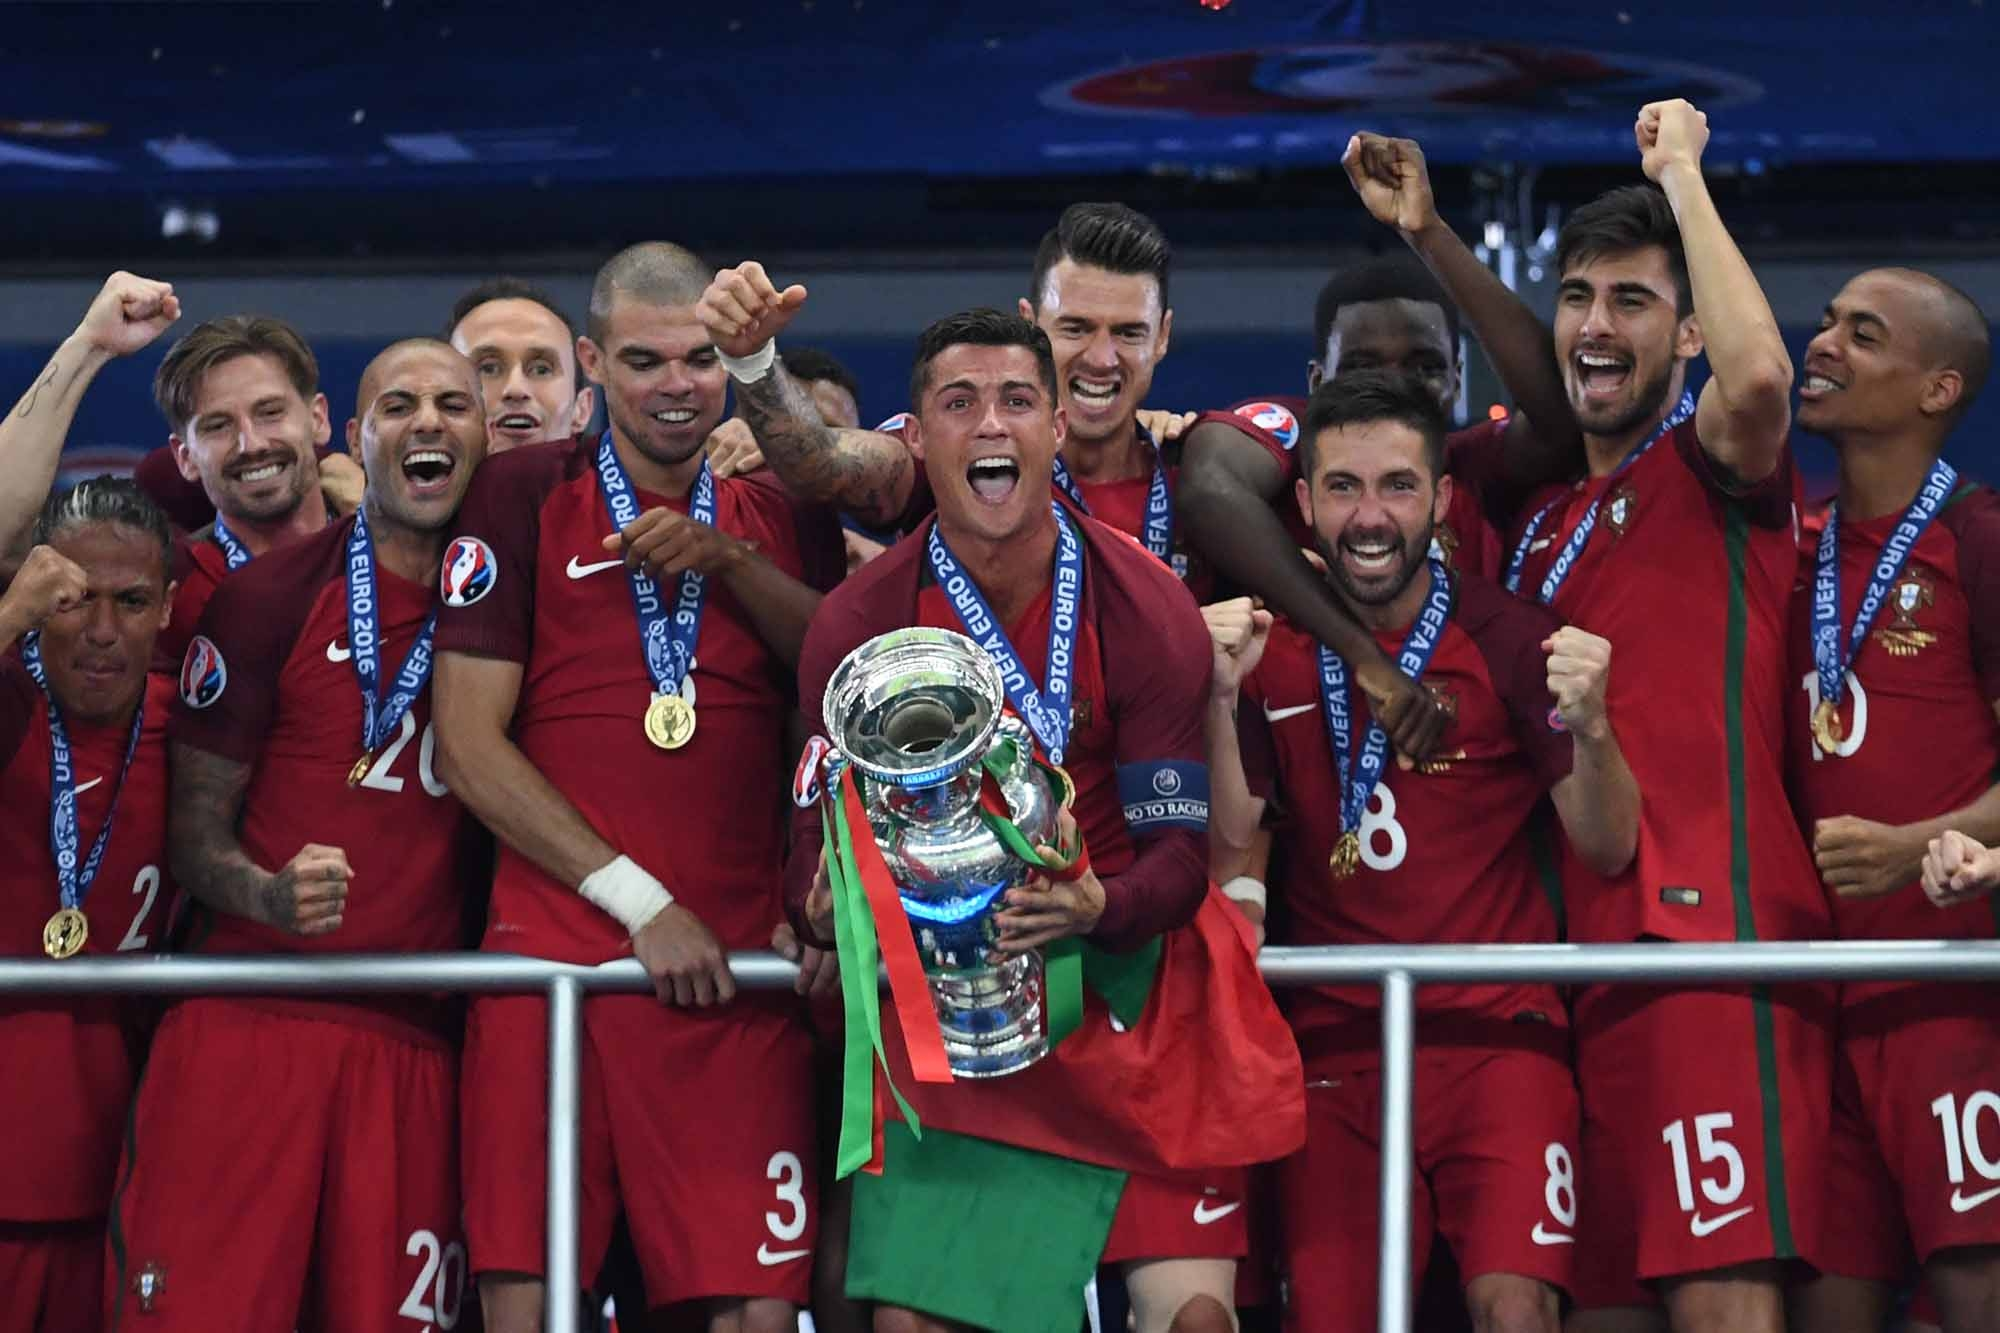 Portugal's forward Cristiano Ronaldo (C) lifts the trophy as he celebrates with teammates winning the Euro 2016 final football match between Portugal and France at the Stade de France in Saint-Denis, north of Paris, on July 10, 2016. / AFP PHOTO / FRANCIS